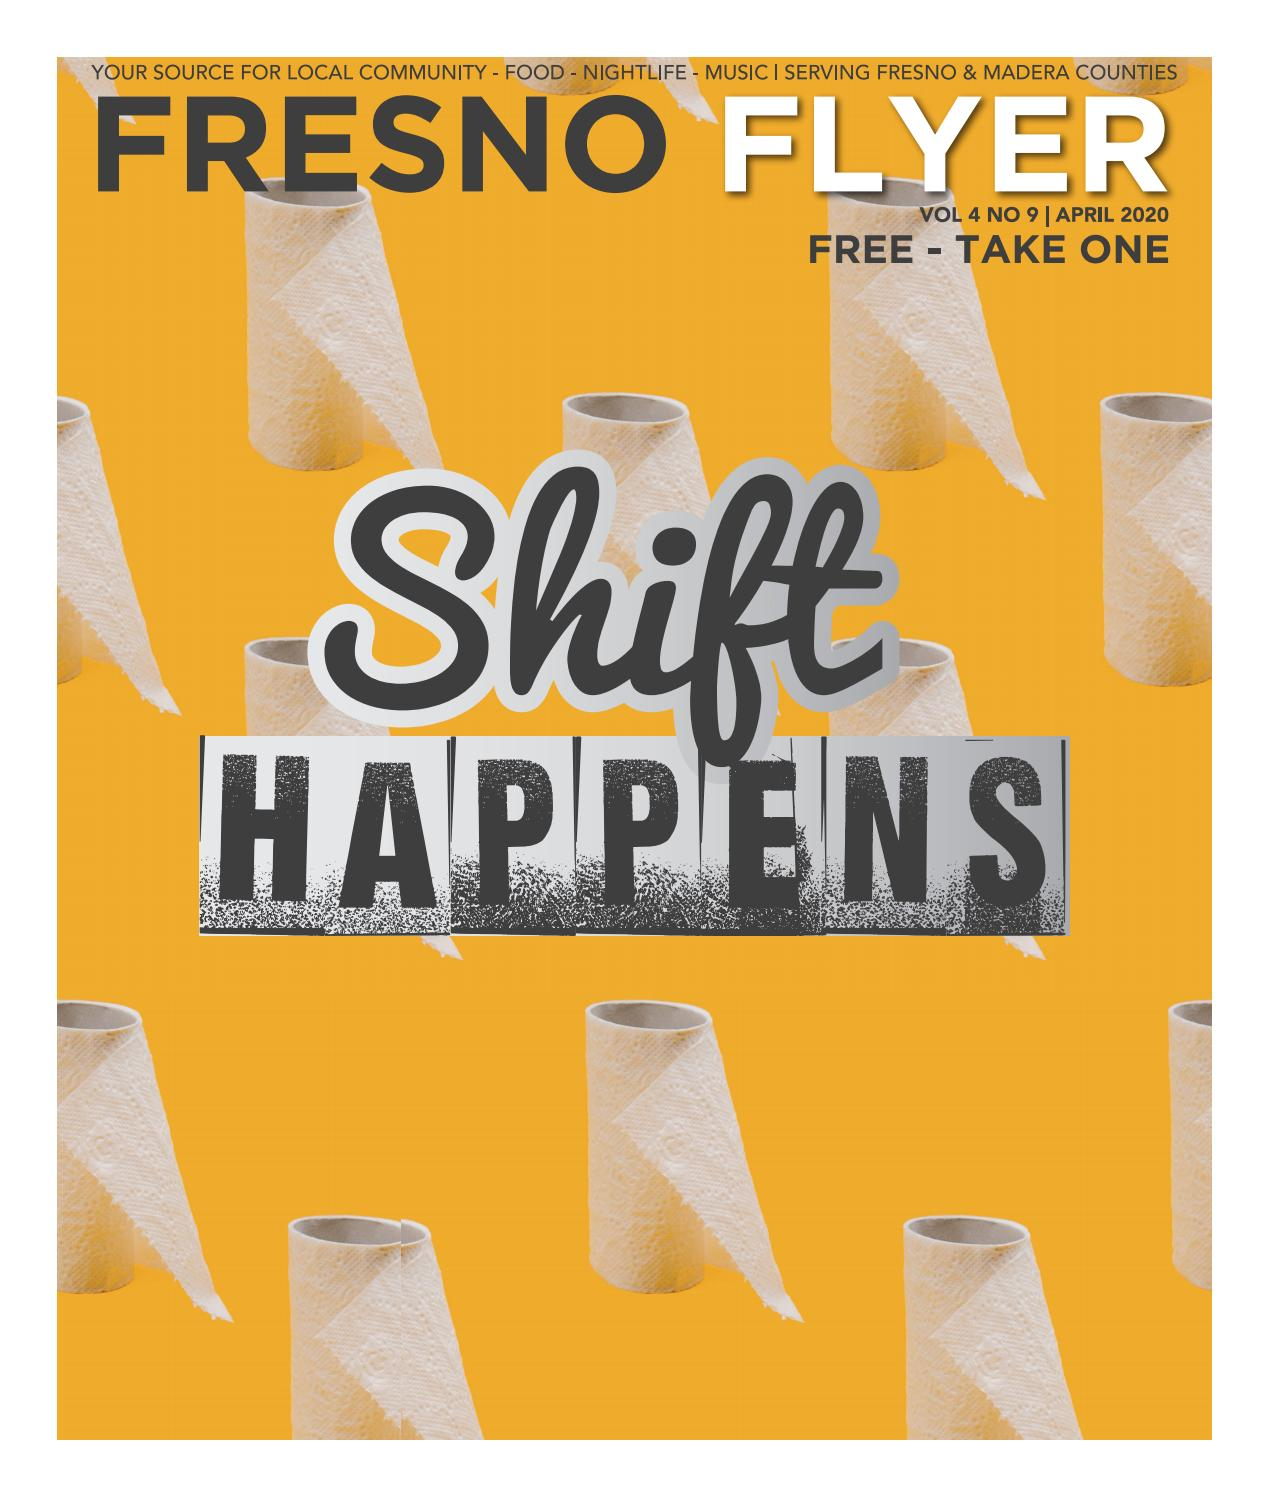 premier puff solid color decorative pillows.htm fresno flyer vol 4 no 9 by fresno flyer issuu  fresno flyer vol 4 no 9 by fresno flyer